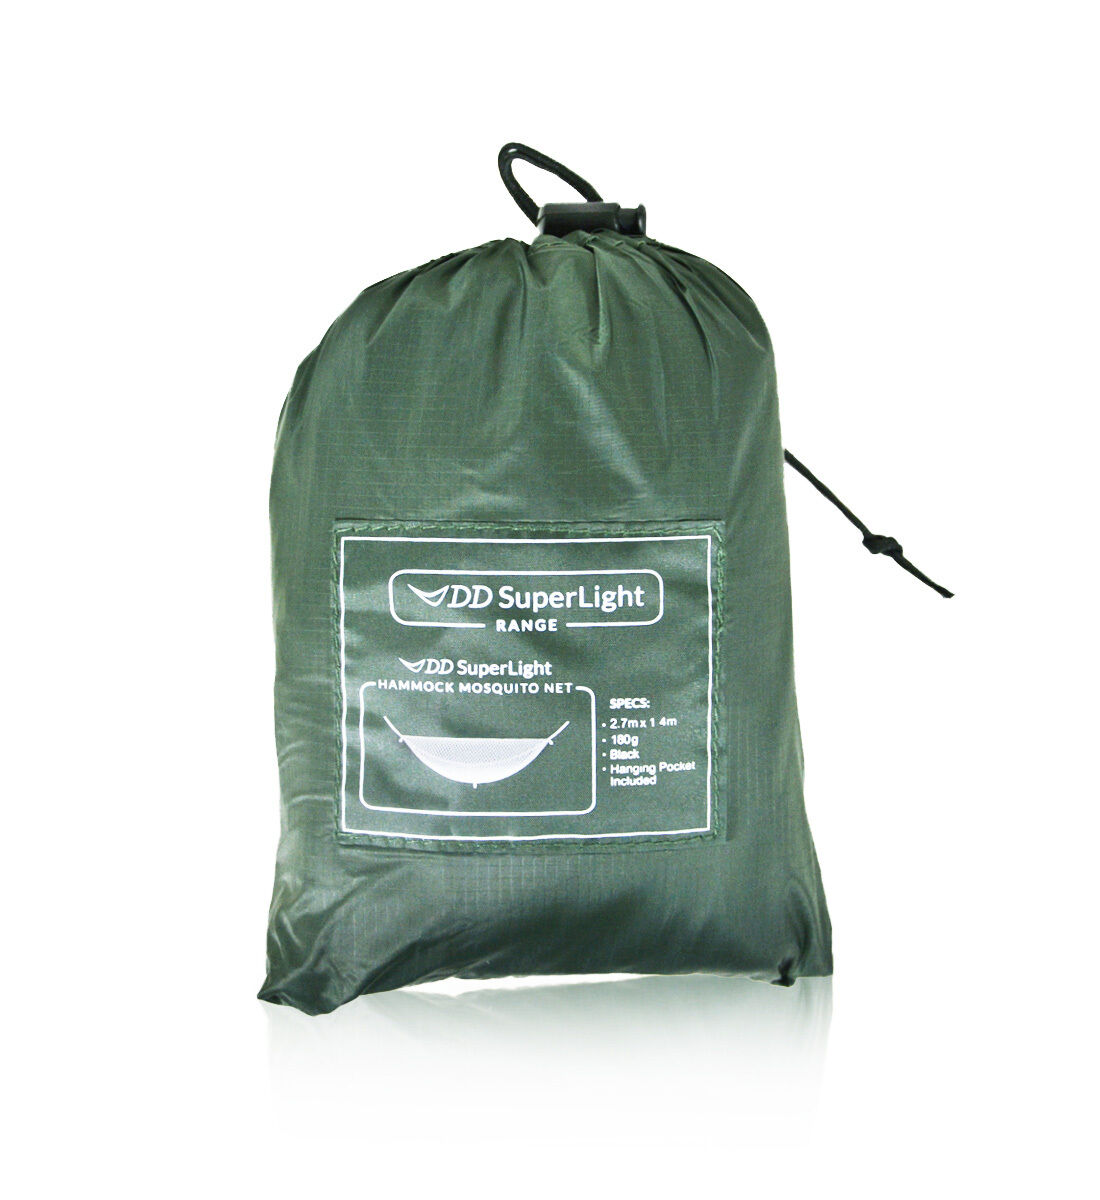 DD SuperLight Mosquito Net Ultralight, Camping,  Bushcraft  wholesale price and reliable quality